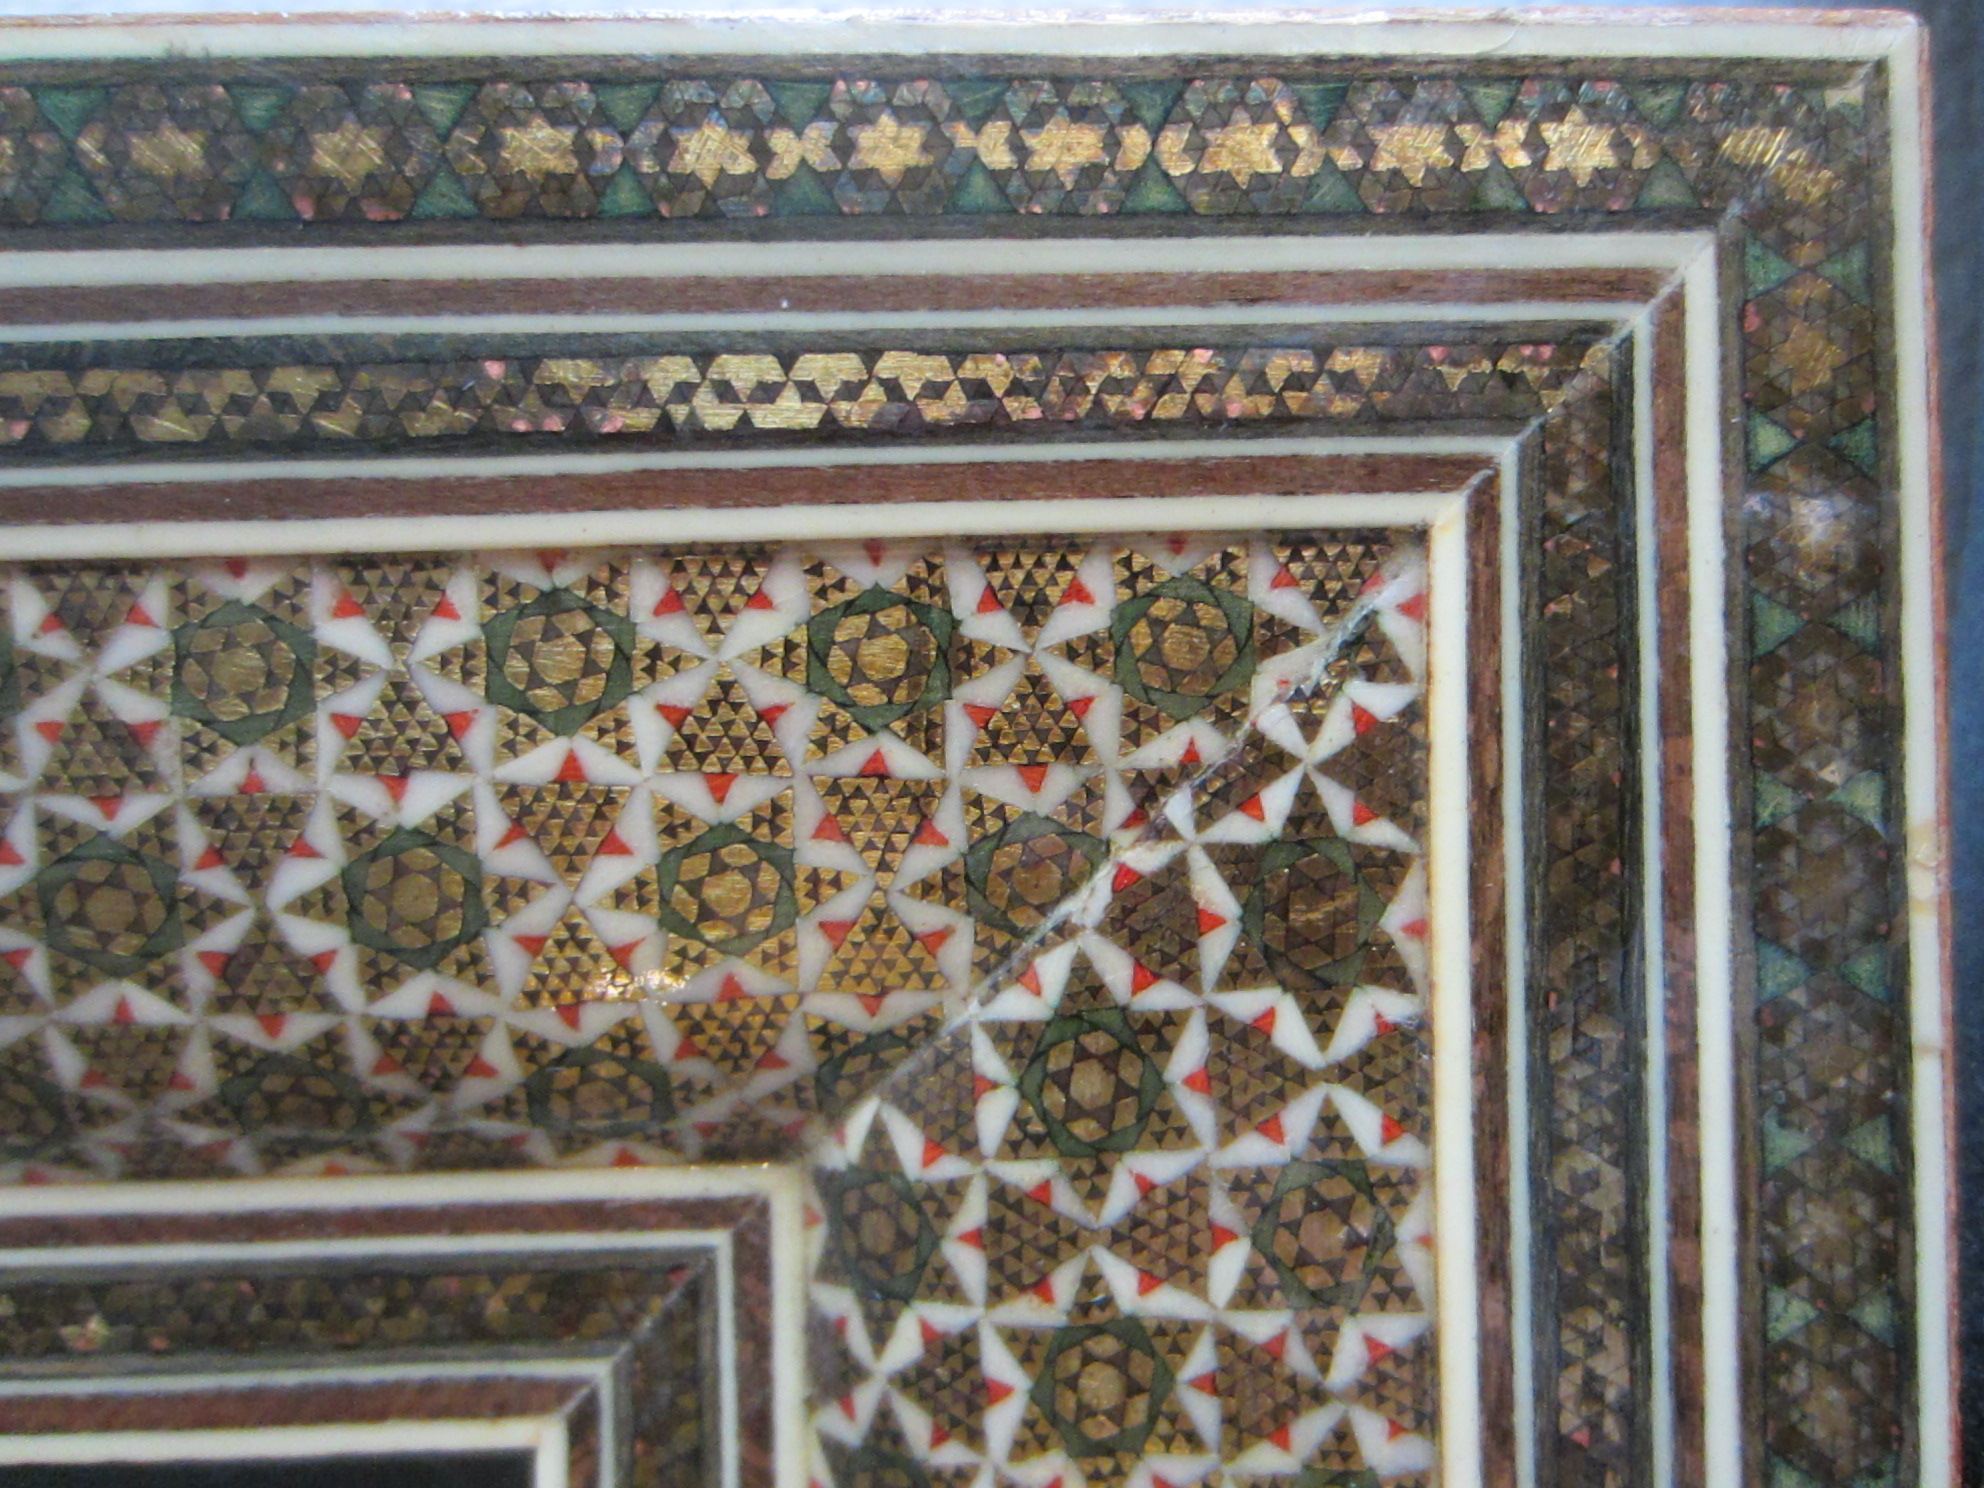 Etched Metal Persian Copper Art Inlaid Khatam Frame For